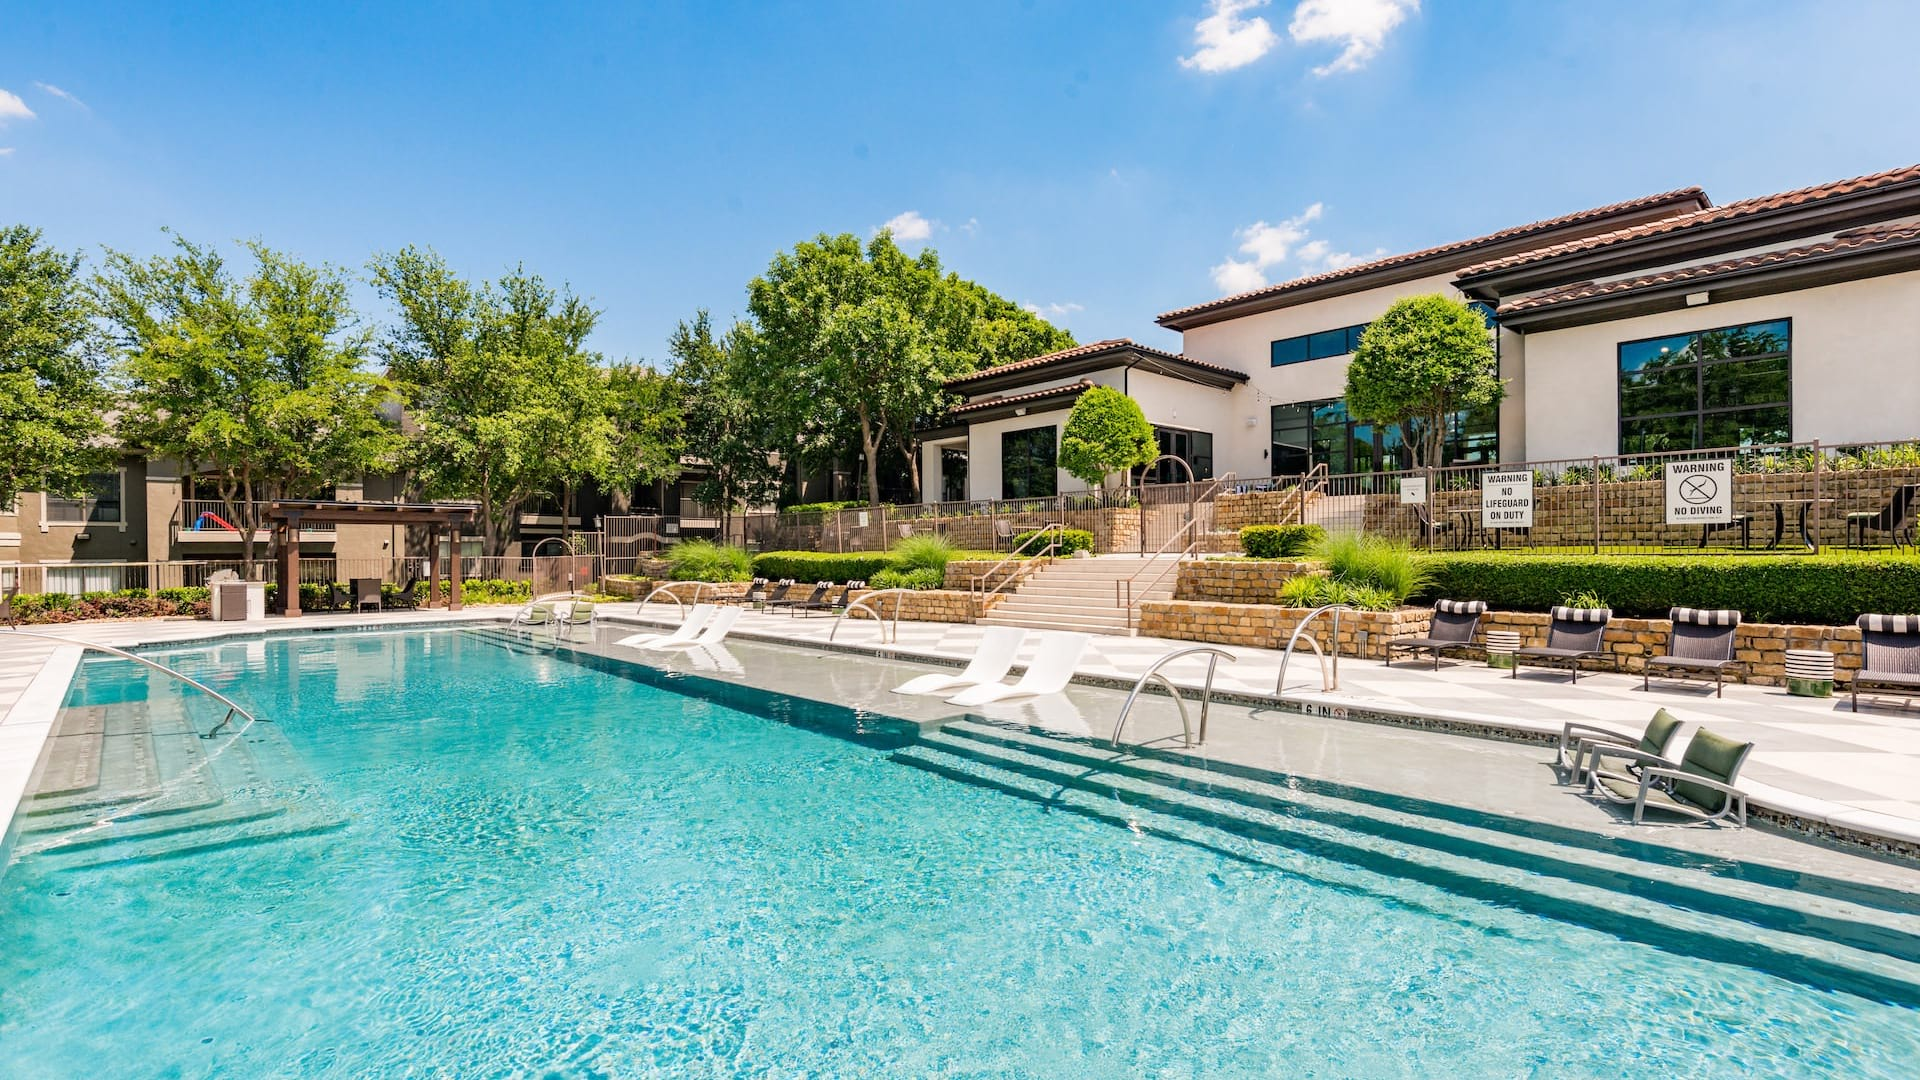 Irving apartment complex with pool